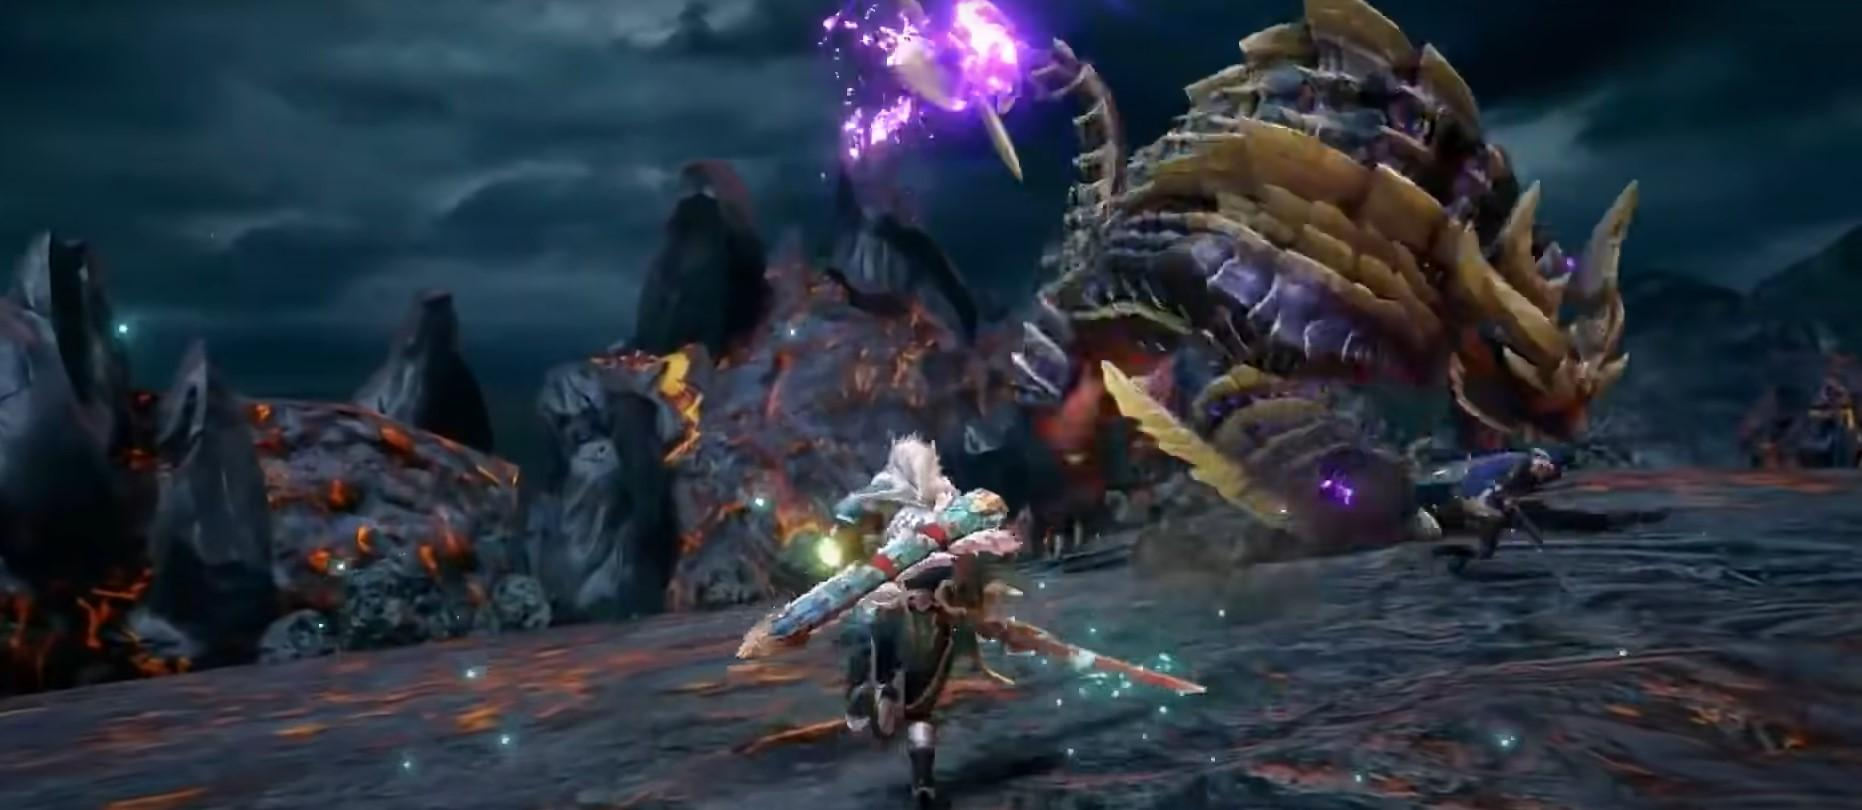 Hunters facing off against Magnamalo in Monster Hunter Rise